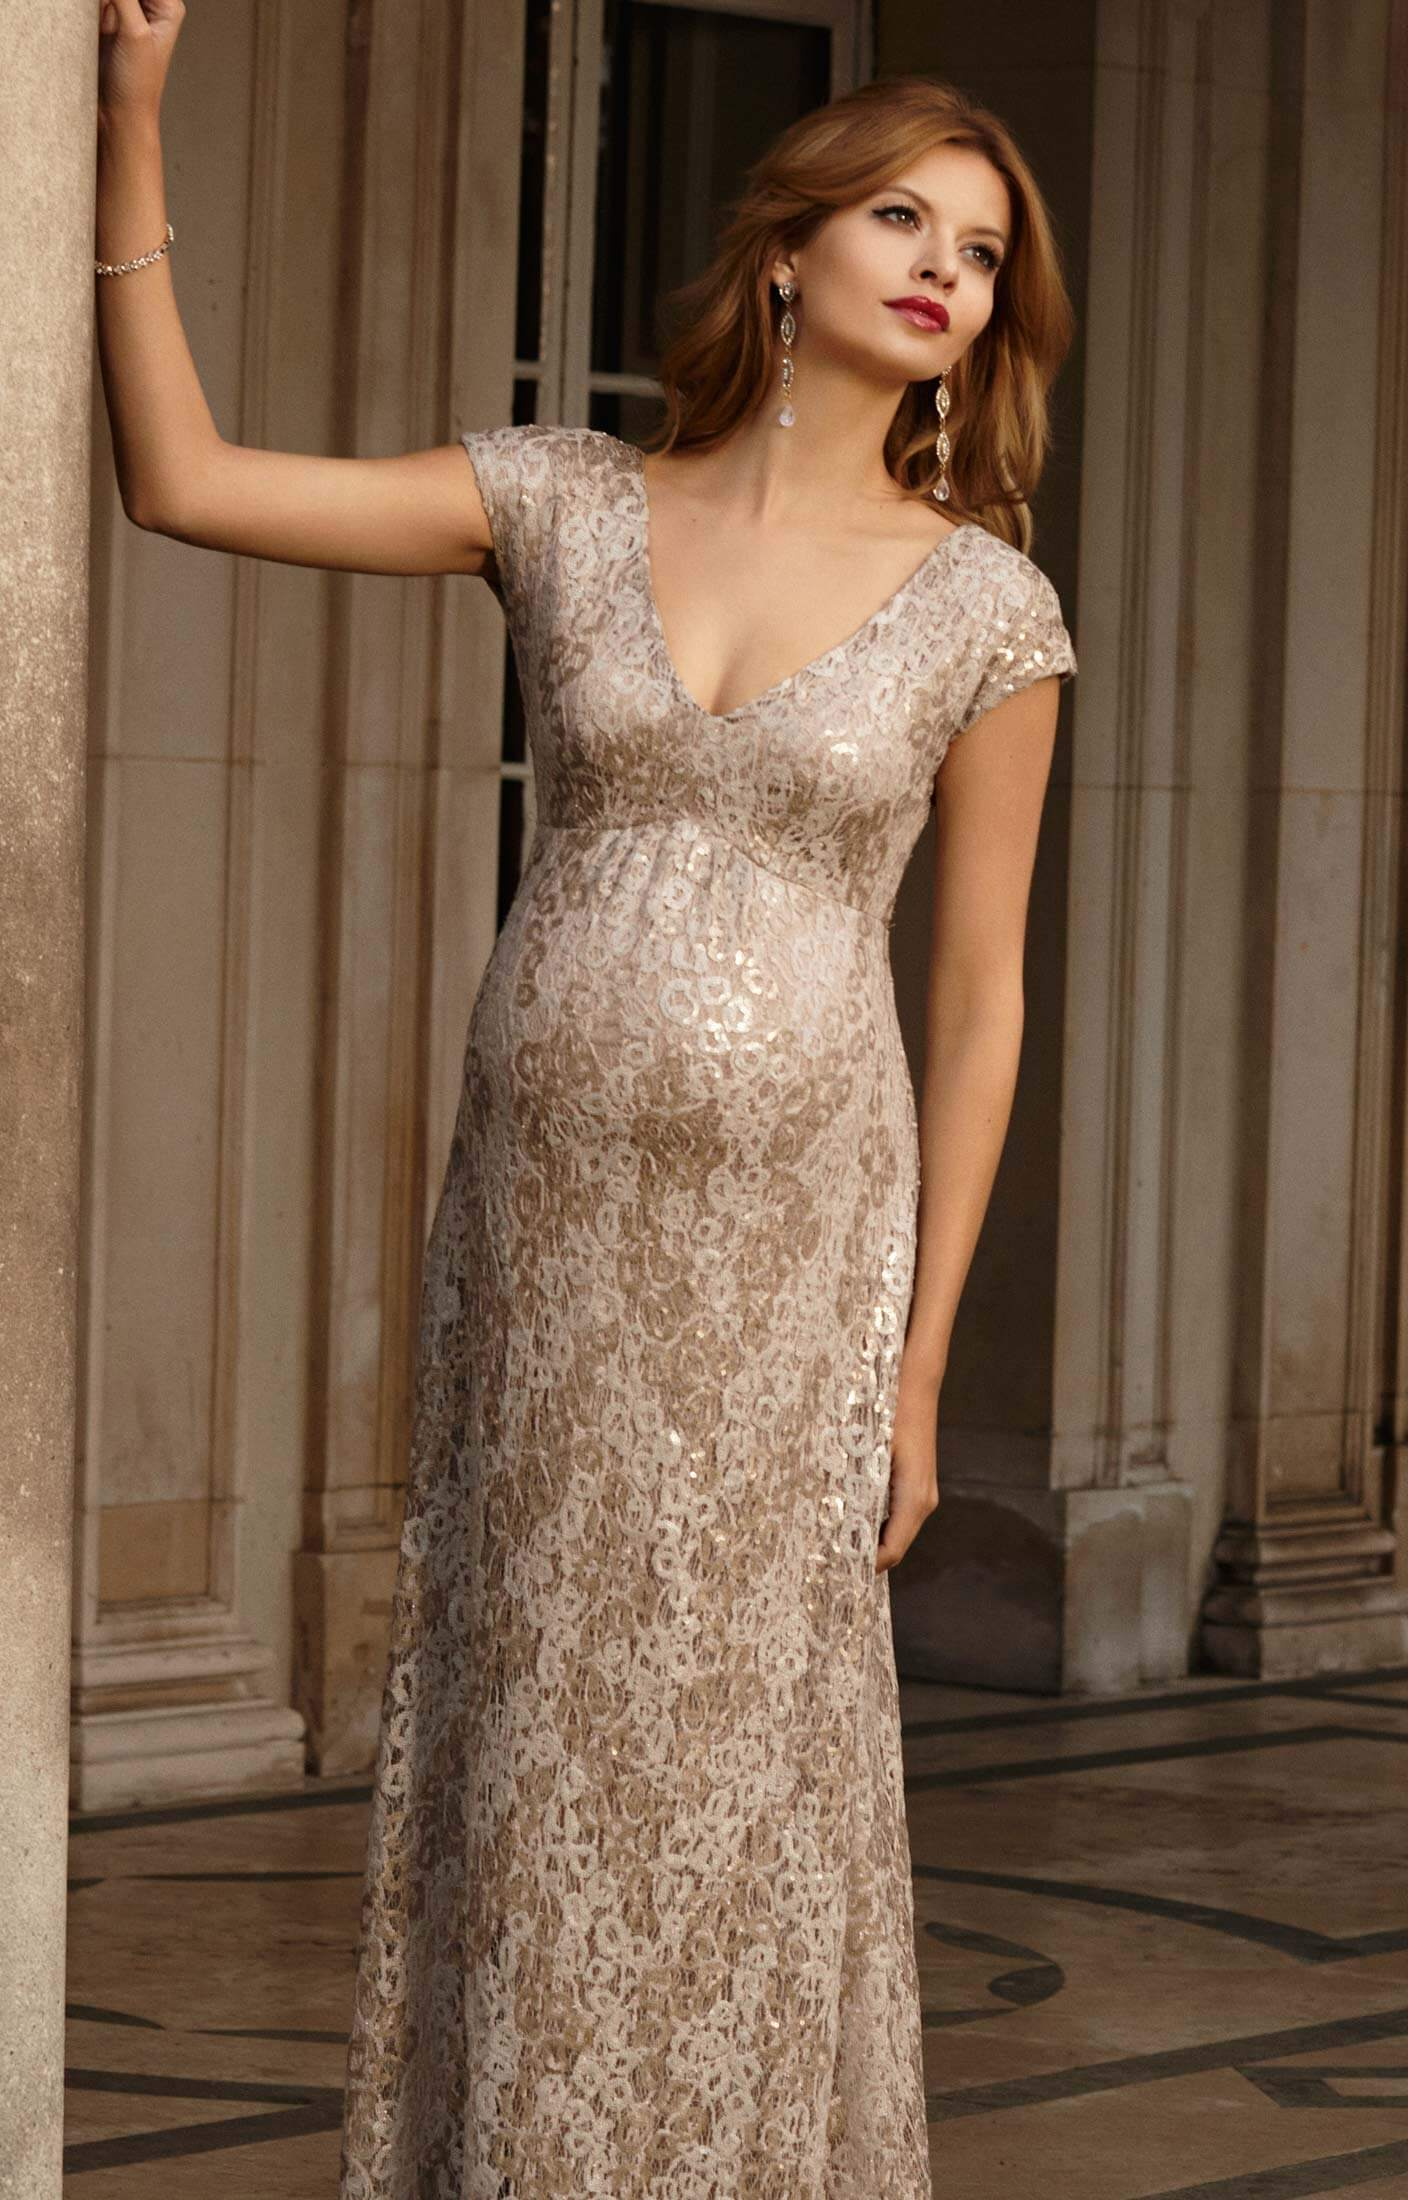 e83ae384fde0f Carmen Maternity Gown Gold Rush - Maternity Wedding Dresses, Evening Wear  and Party Clothes by Tiffany Rose UK